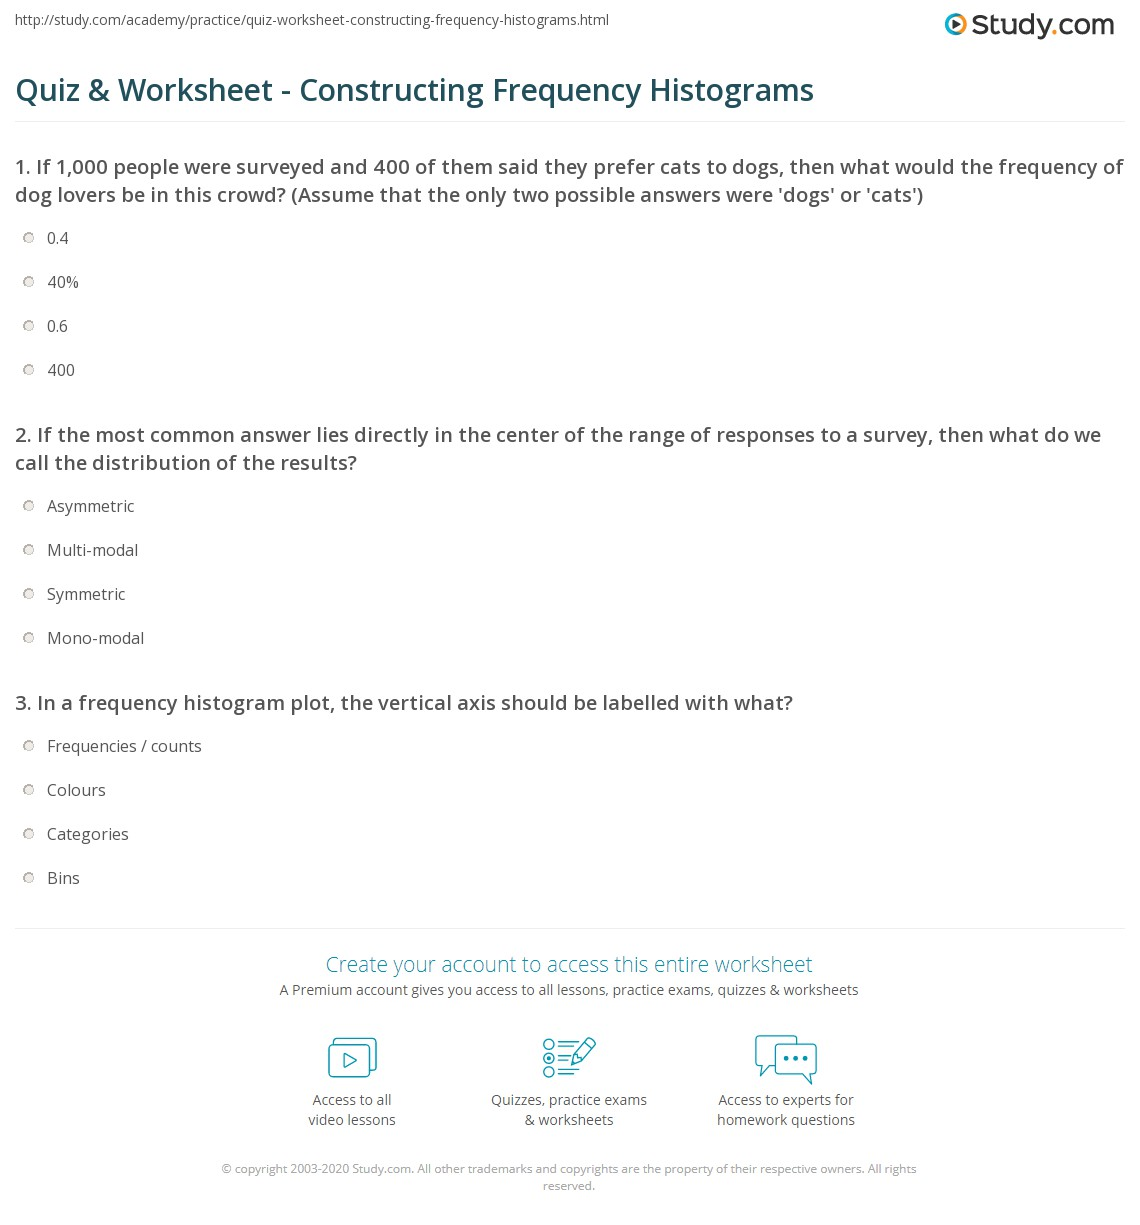 Quiz & Worksheet - Constructing Frequency Histograms | Study.com